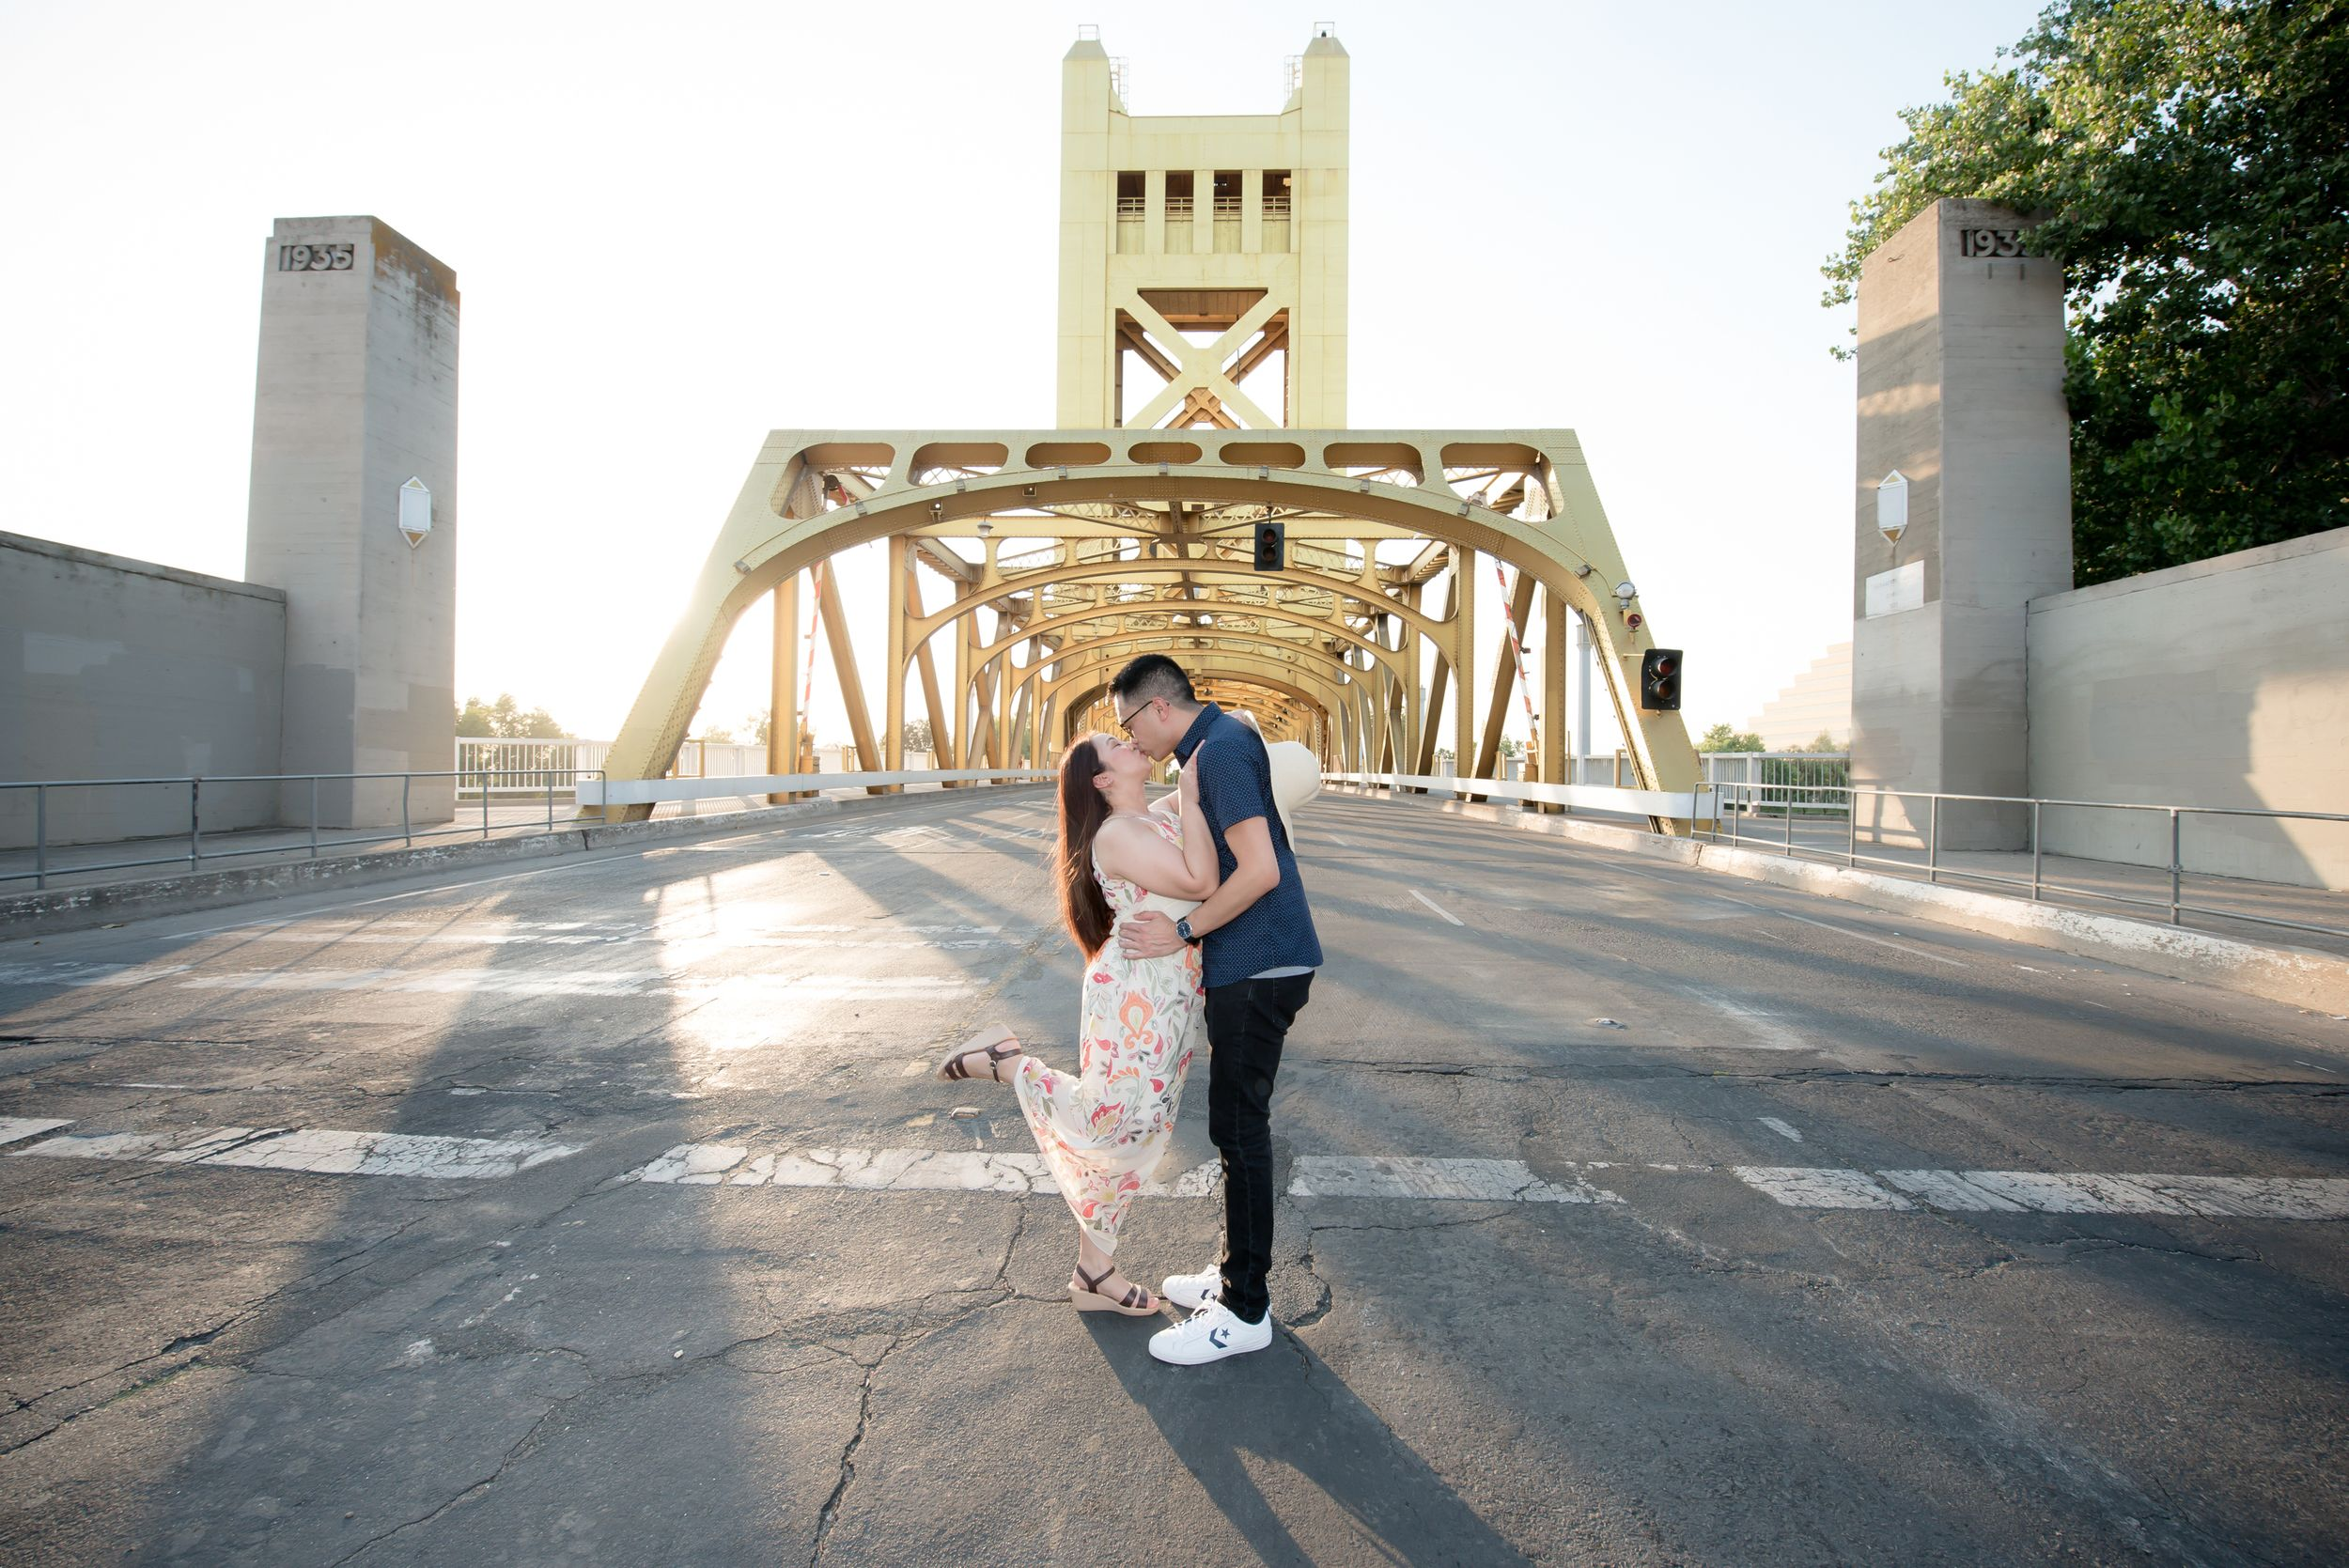 Sacramento engagement photographer - engagement photo session at the Tower Bridge in Old Town Sacramento, Calif.